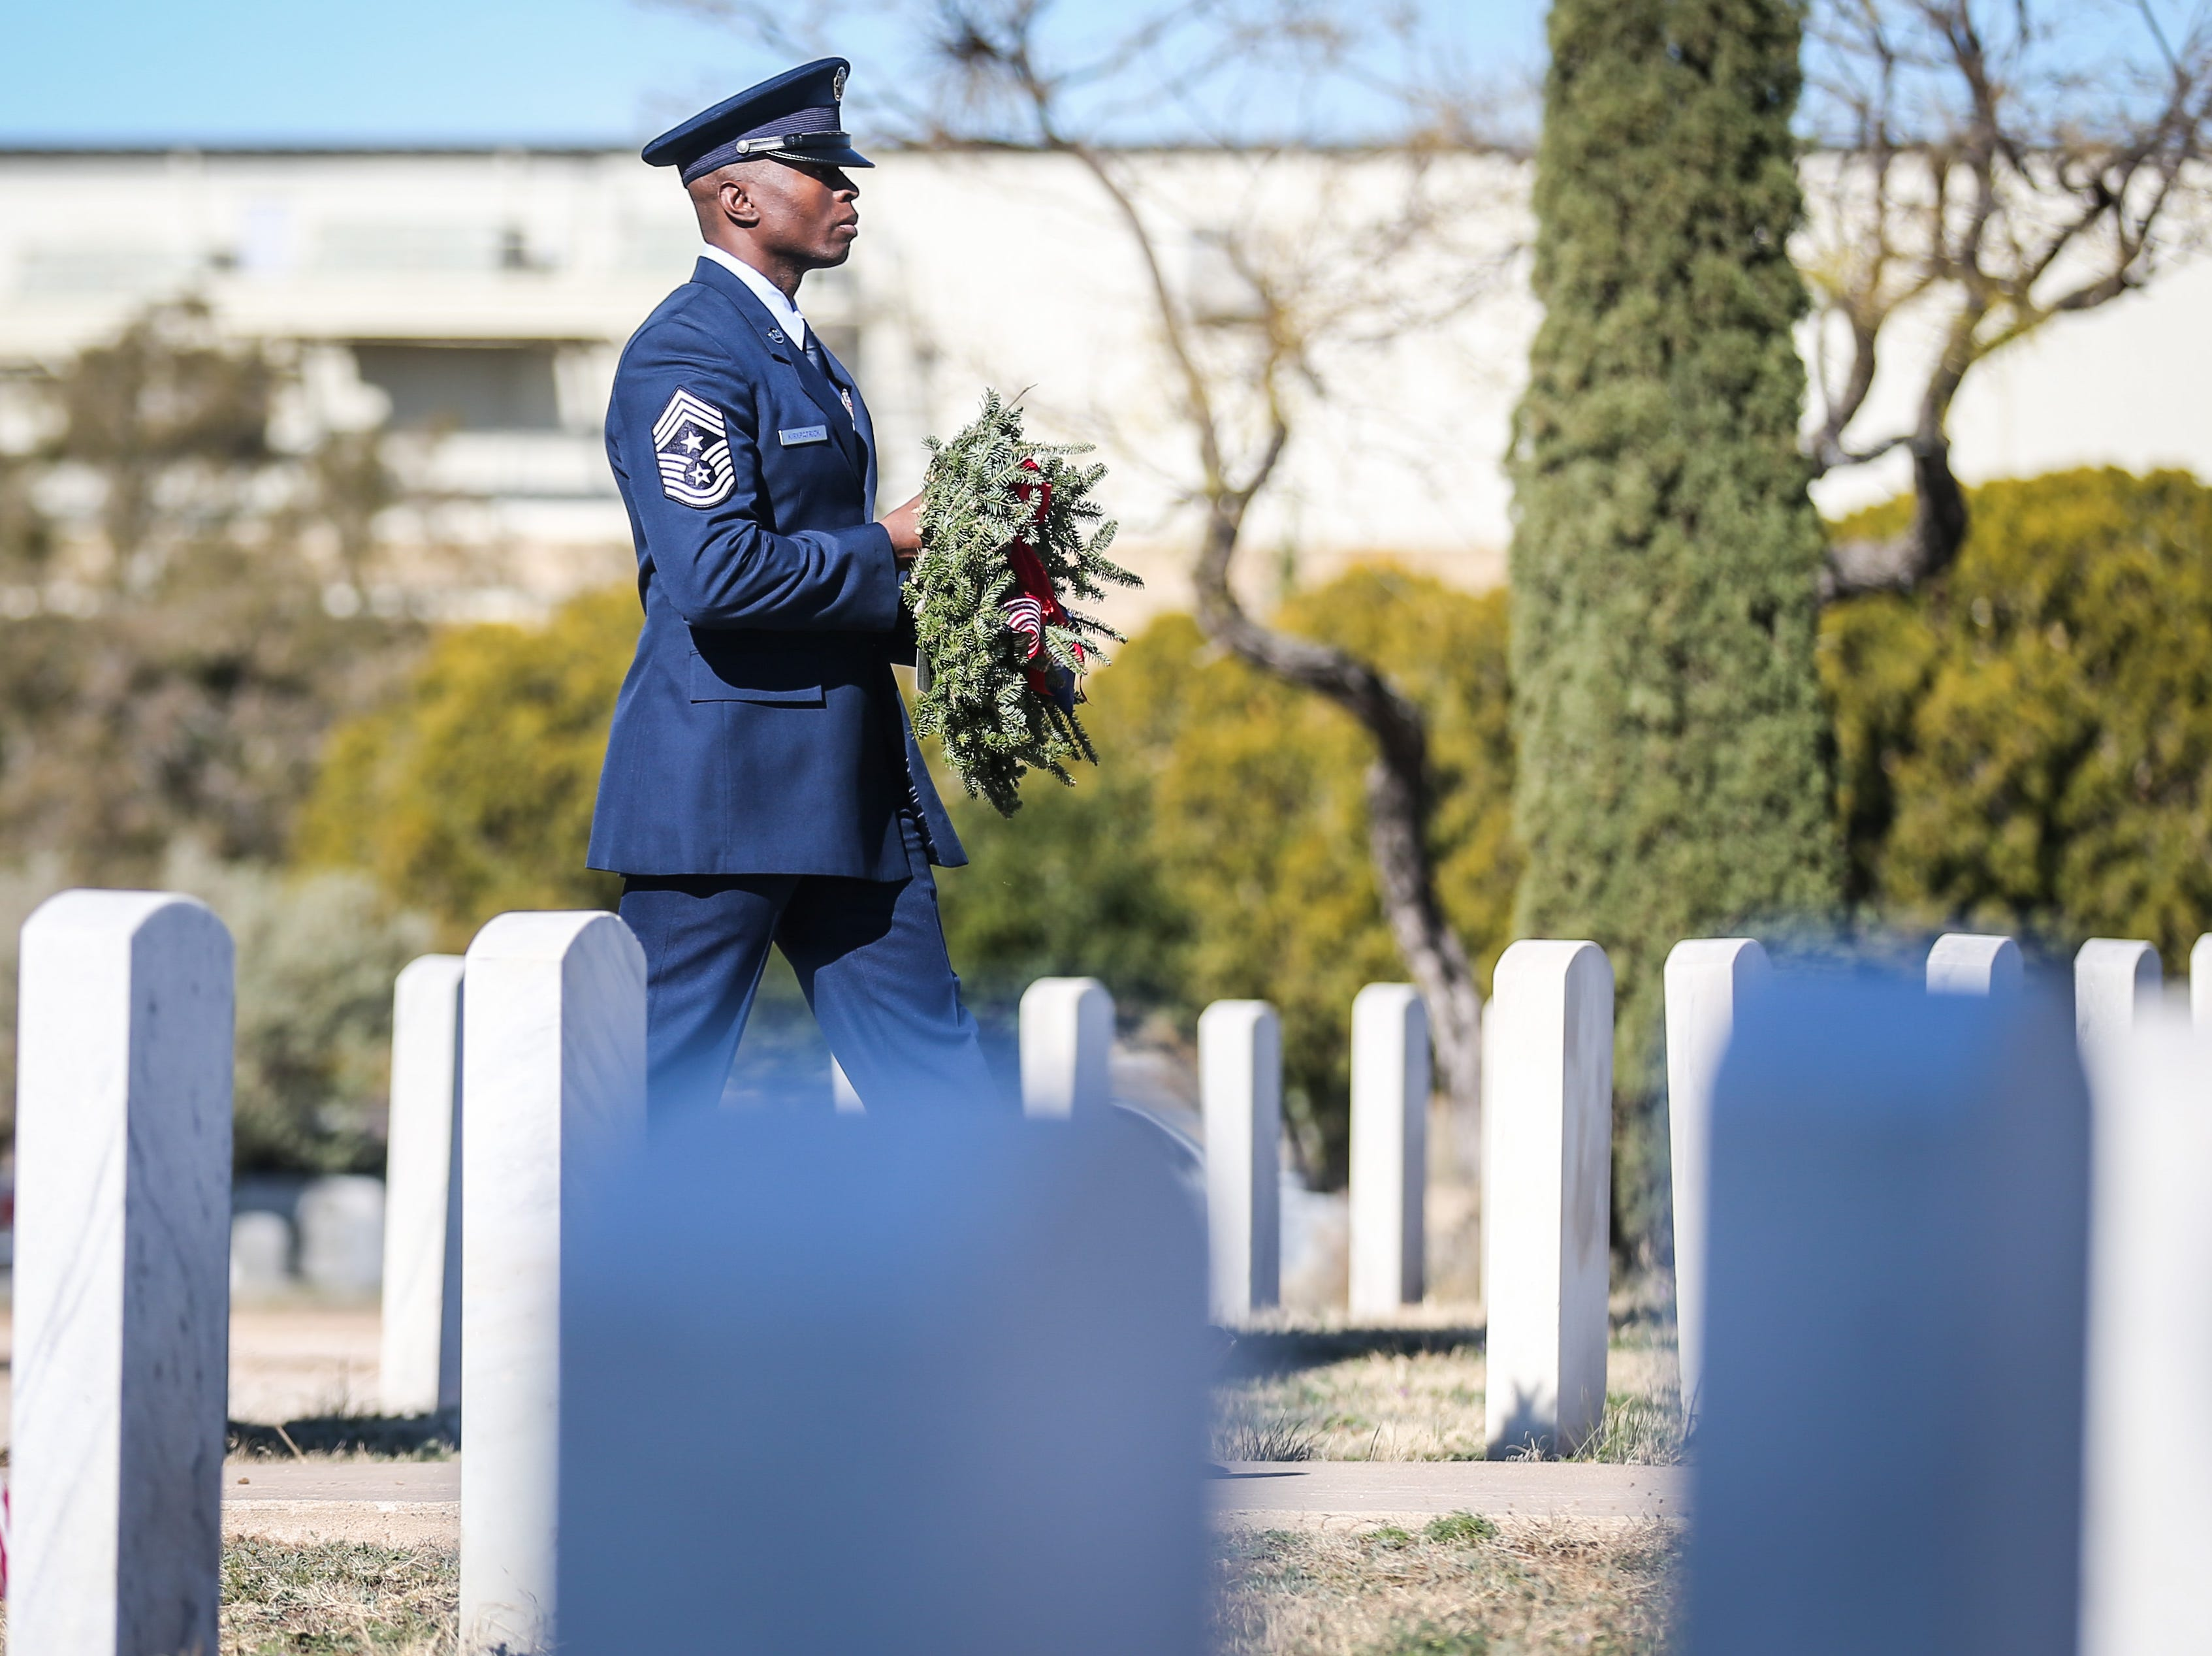 Chief Master Sgt. Labor KirkPatrick, 17th Training Wing at Goodfellow Air Force Base, walks up with a ceremonial wreath during the Wreaths Across America Saturday, Dec. 15, 2018, at Belvedere Memorial Park.